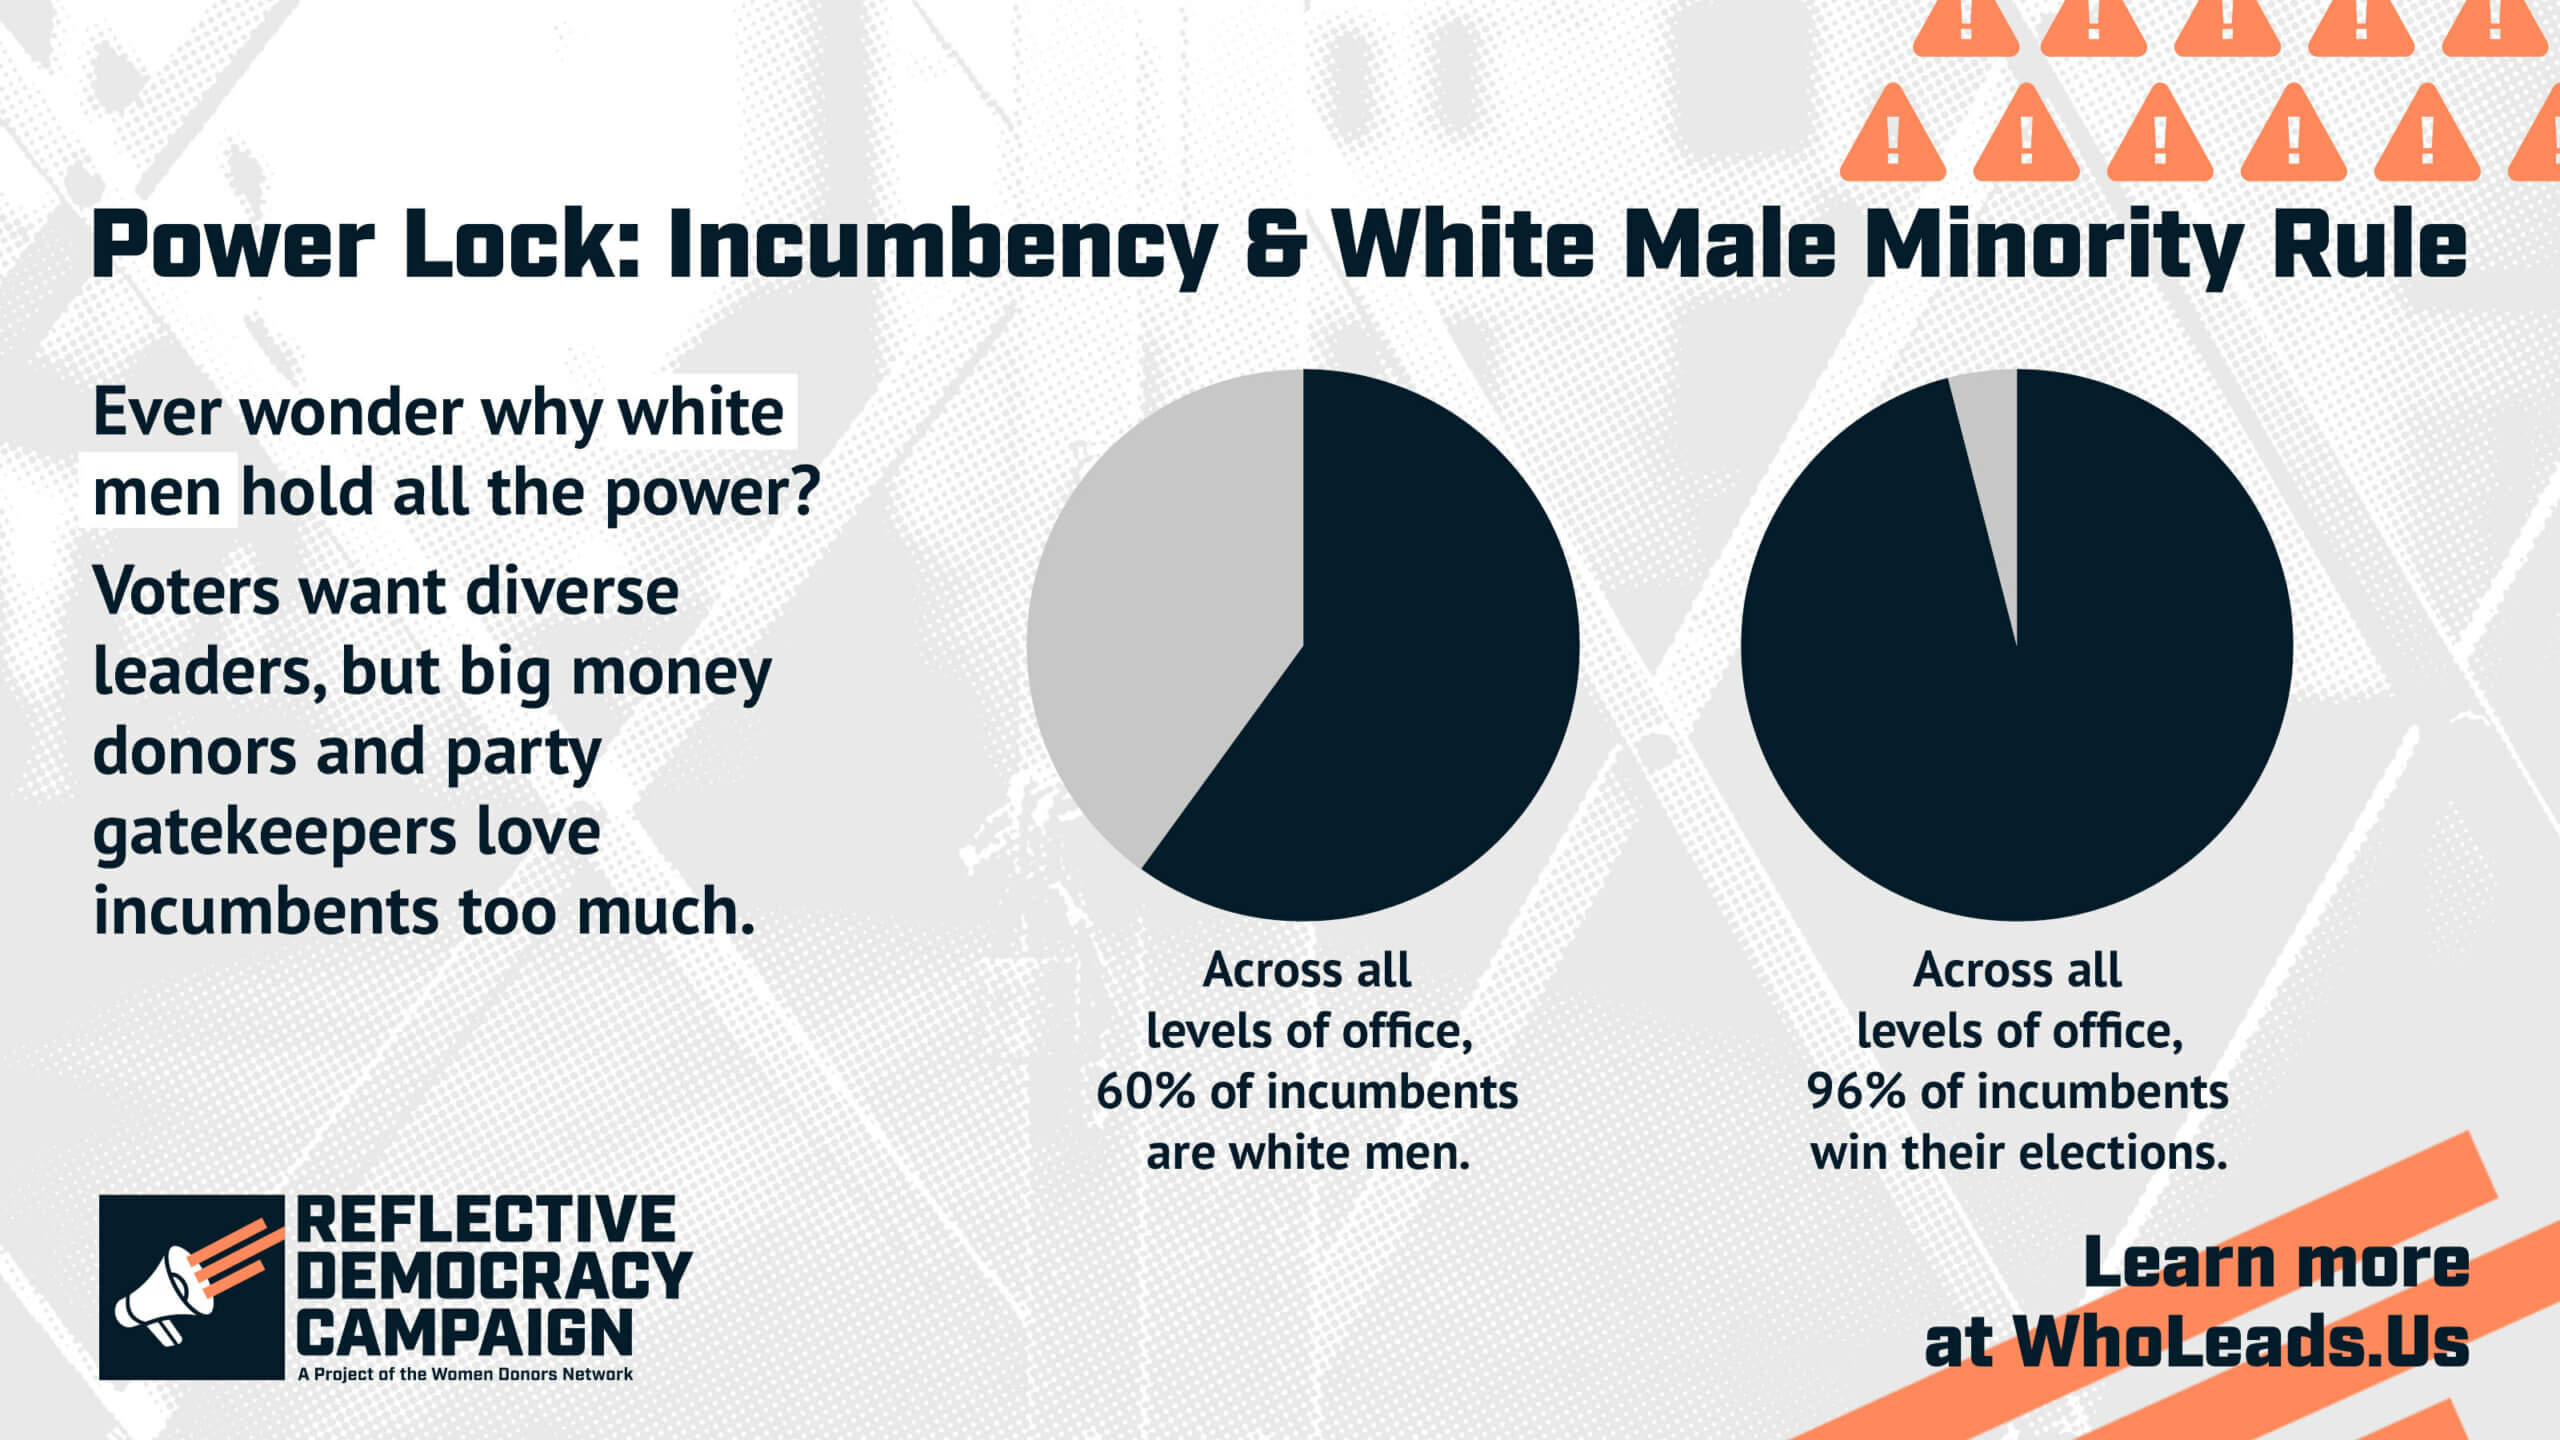 Pie charts showing that 60% of incumbents are white men, yet they win 96% of their races.